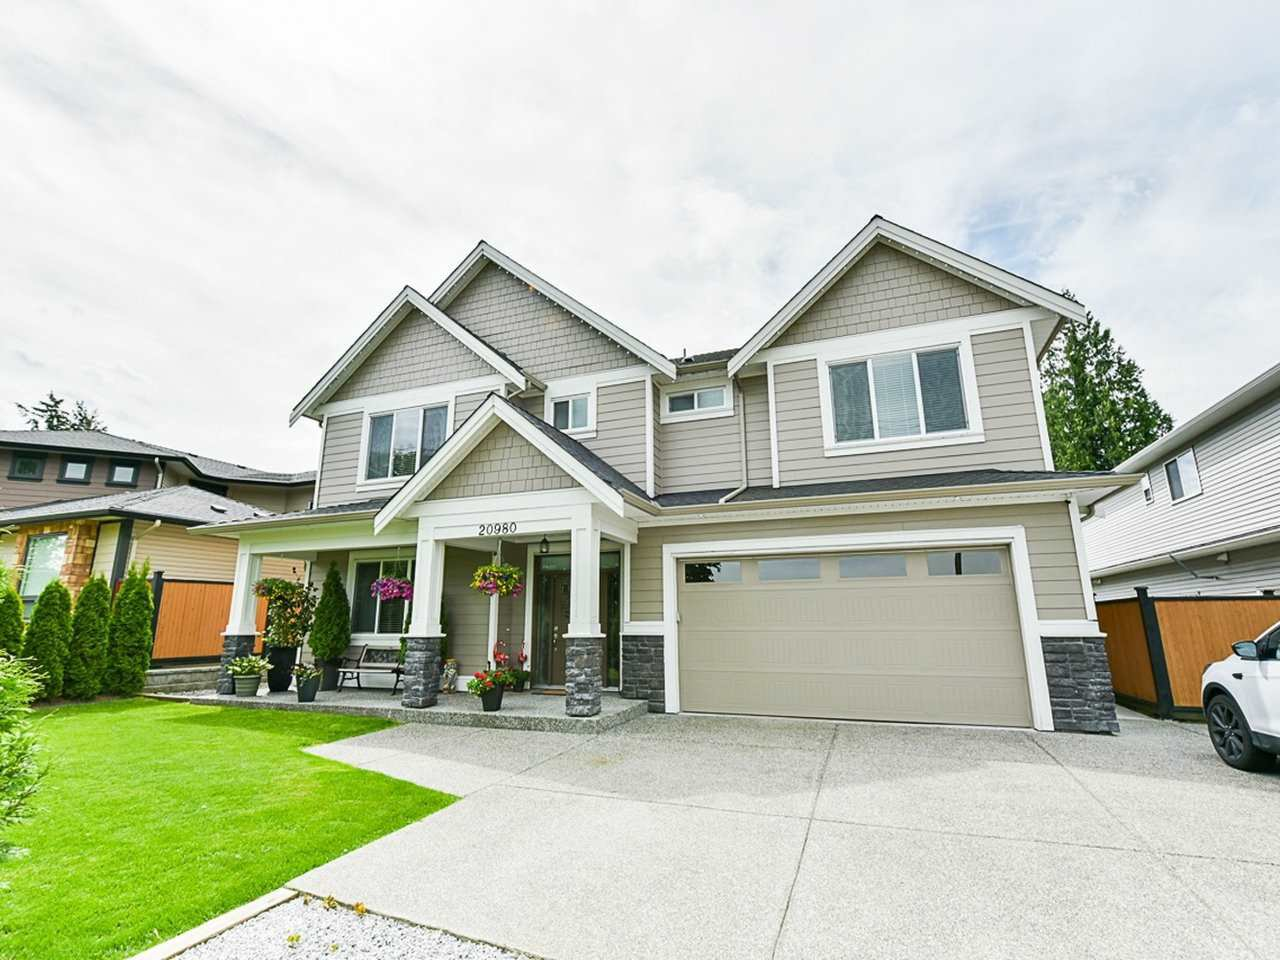 Main Photo: 20980 123 Avenue in Maple Ridge: Northwest Maple Ridge House for sale : MLS®# R2483461